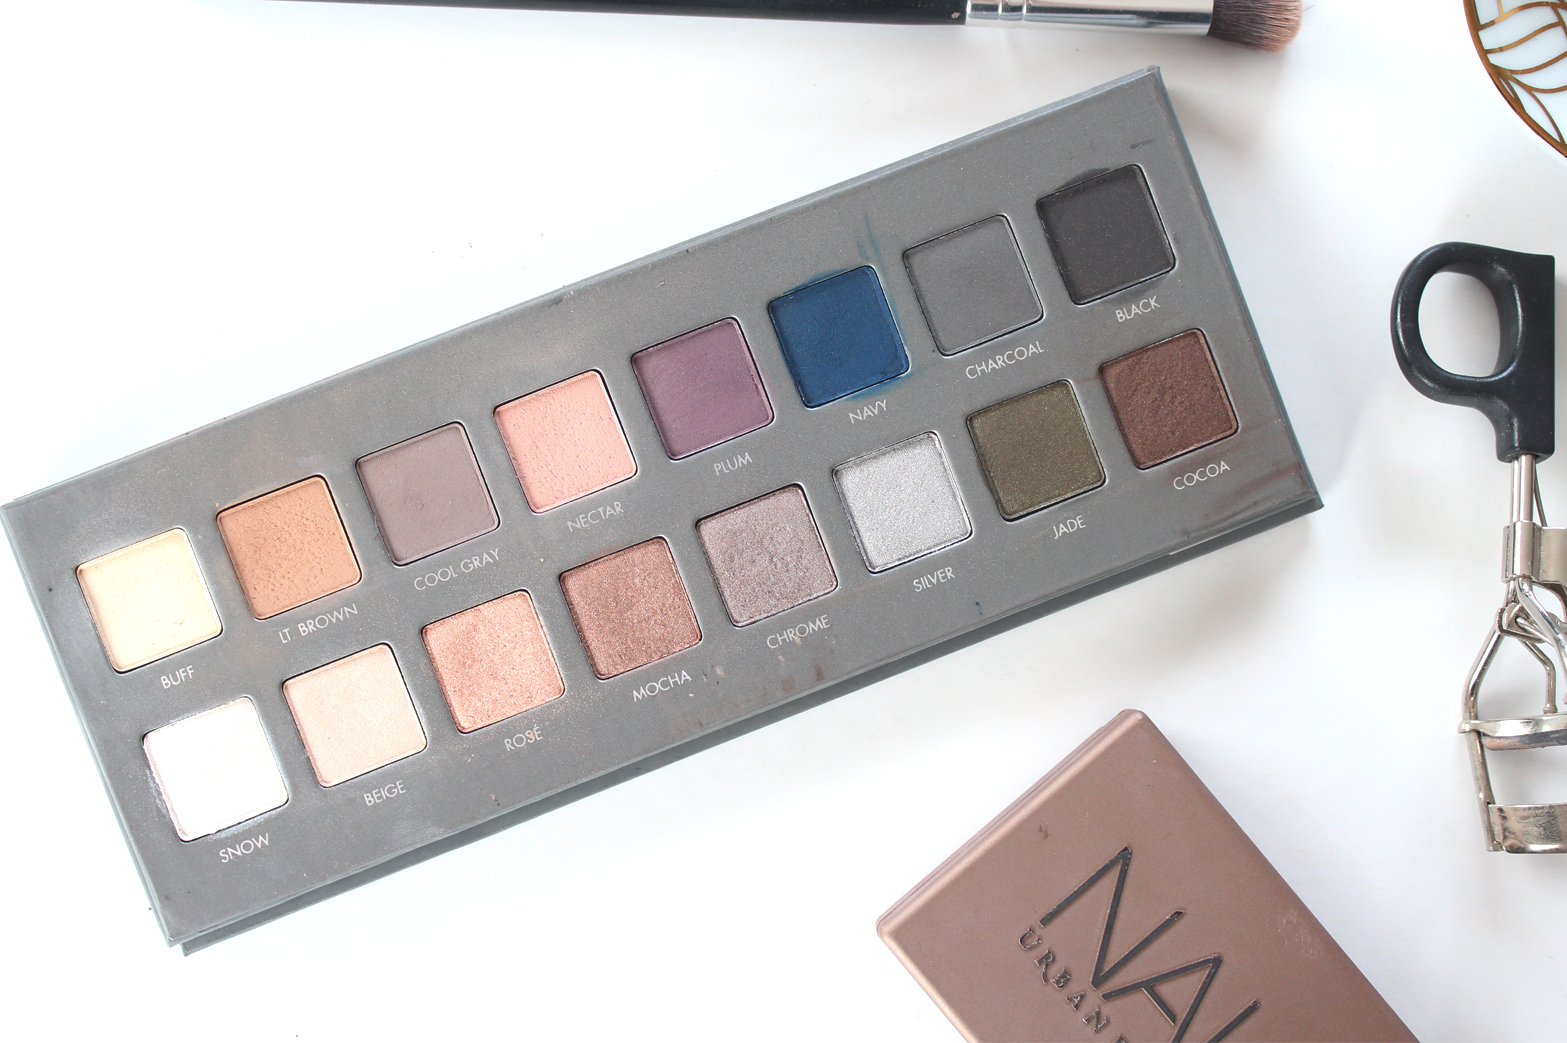 MY MOST USED EYESHADOW PALETTES - Urban Decay Naked 2, Chi Chi, LORAC Pro 2 Palette - CassandraMyee